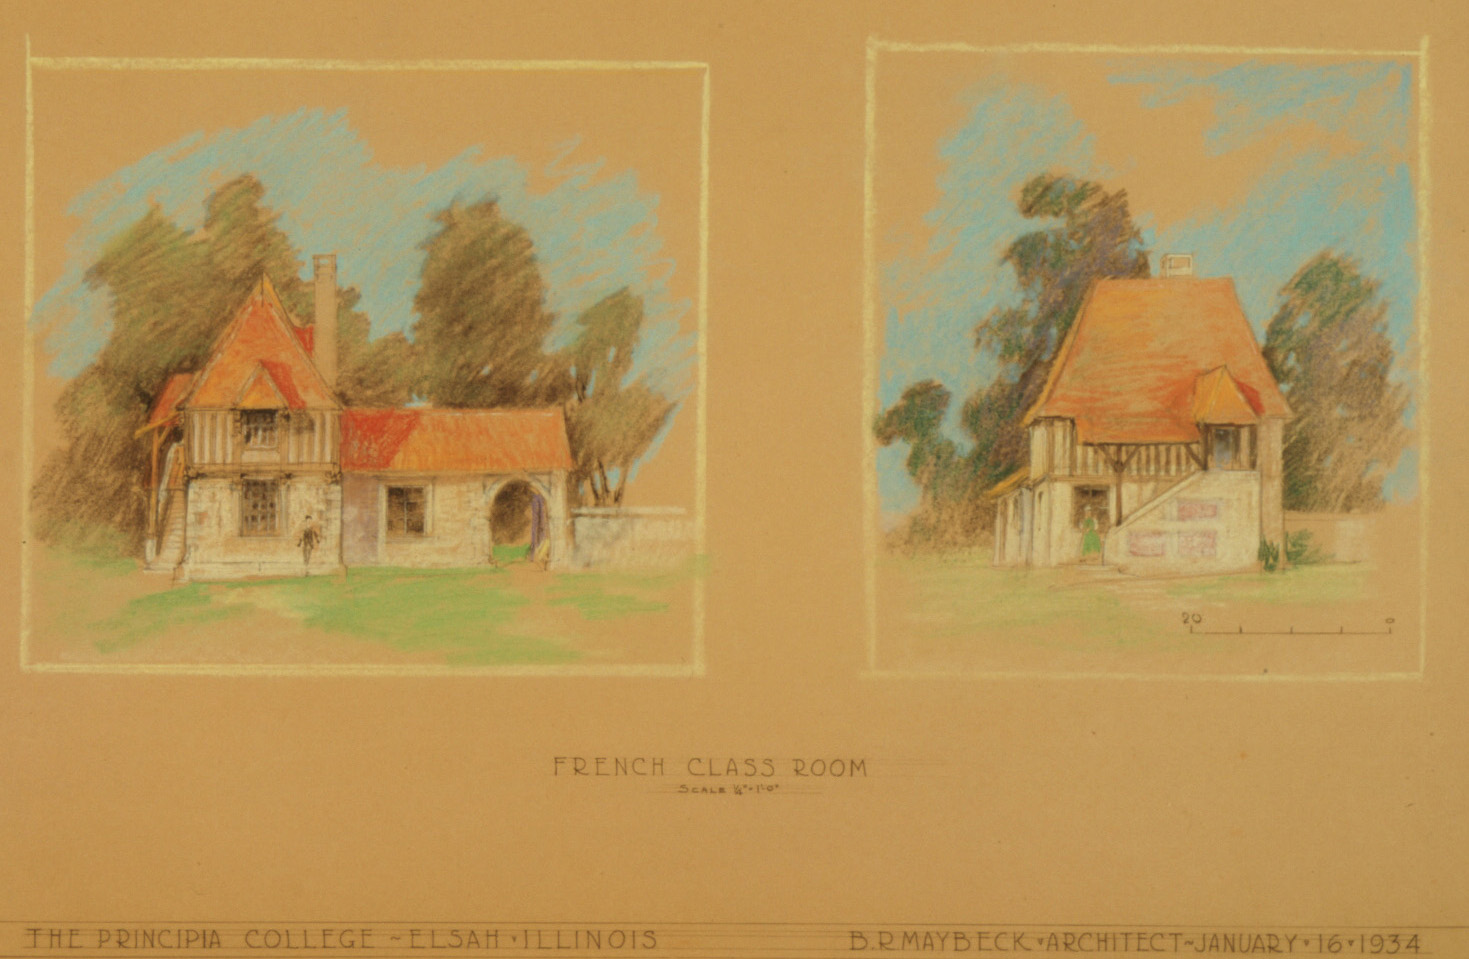 Maybeck & White, French Classroom Cottage, Two Perspectives, 1934, Pastel, graphite on kraft paper, 27 x 39 in.